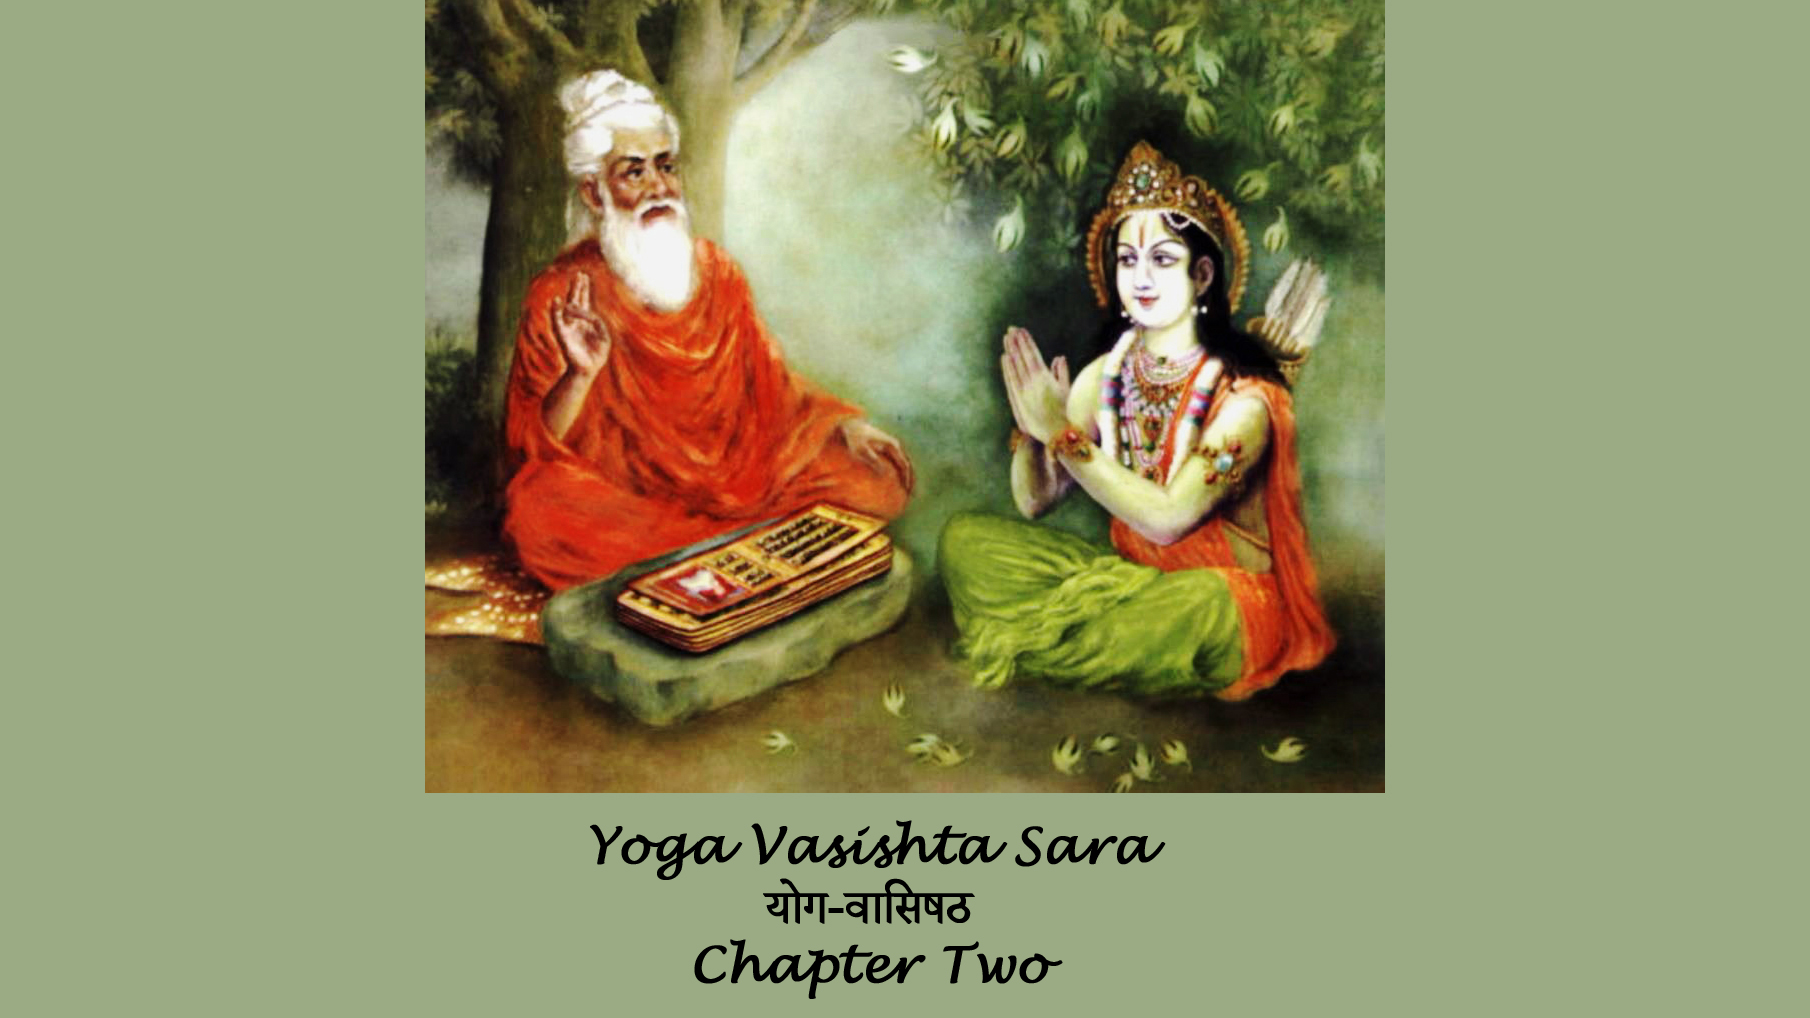 Yoga Vasishta Sara Chapter 2